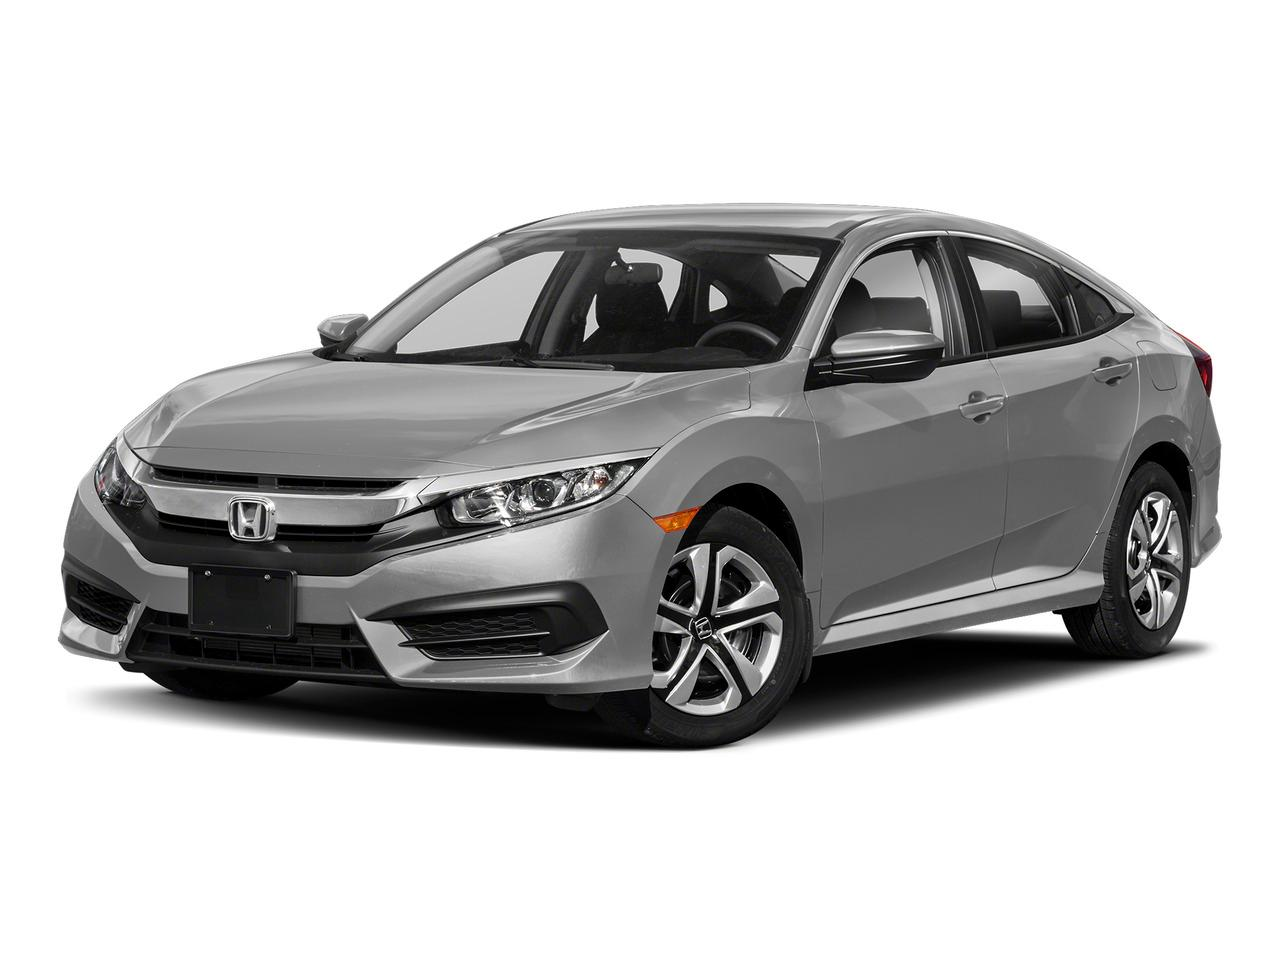 2018 Honda Civic Sedan Vehicle Photo in Kingwood, TX 77339